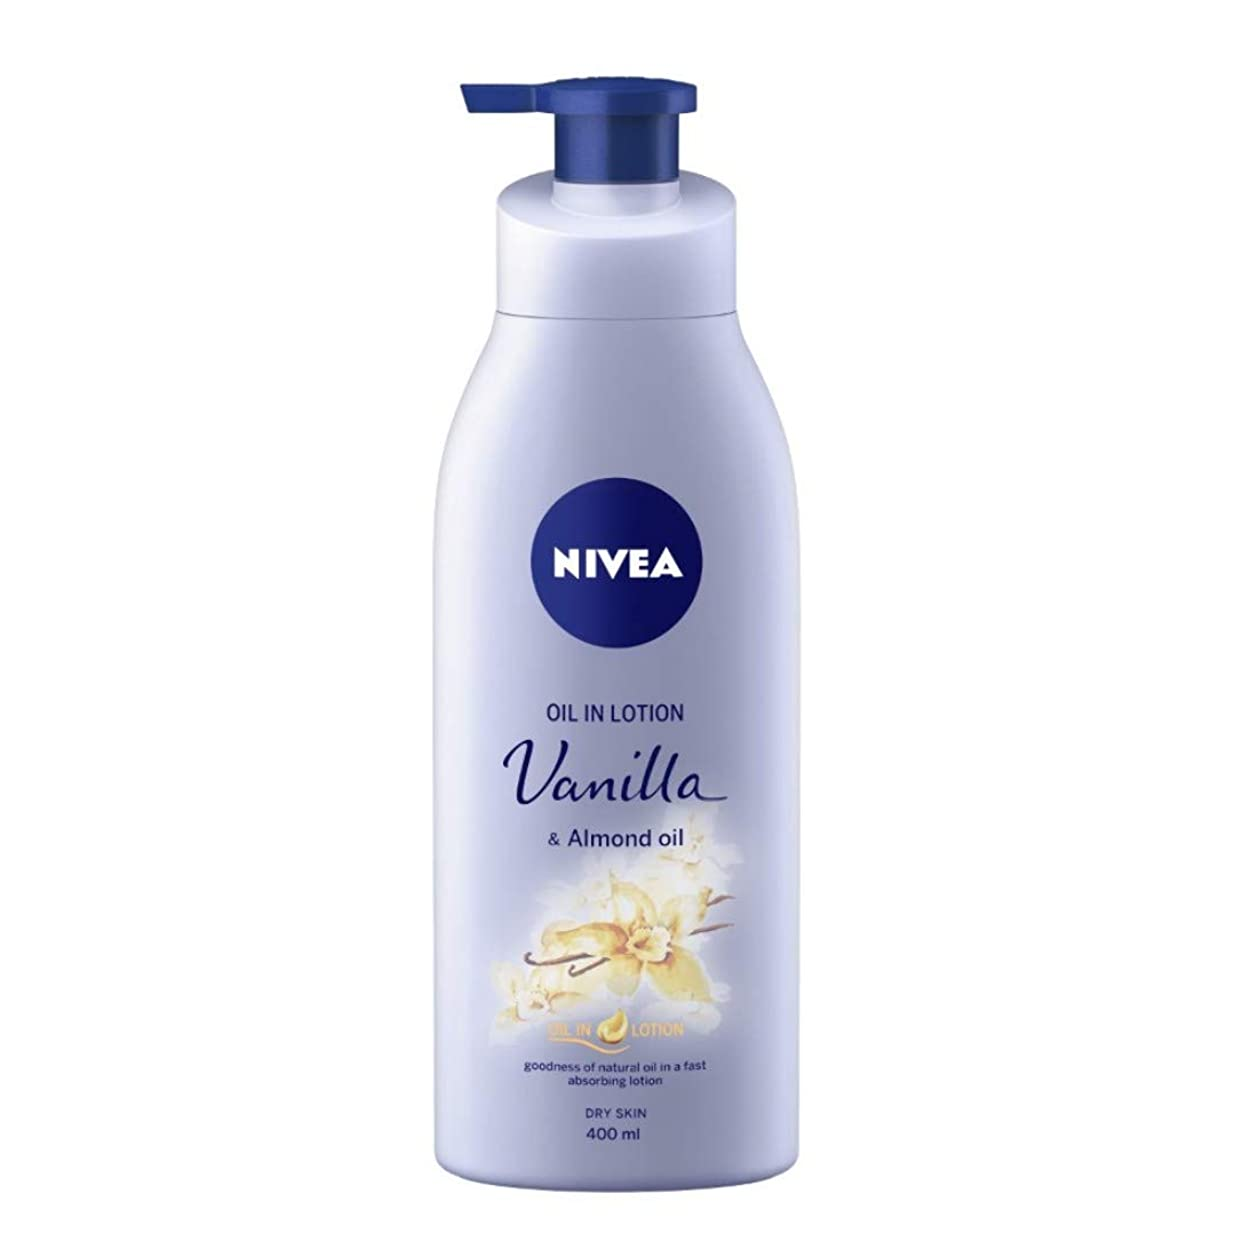 オーロックコントラストレガシーNIVEA Oil in Lotion, Vanilla and Almond Oil, 400ml